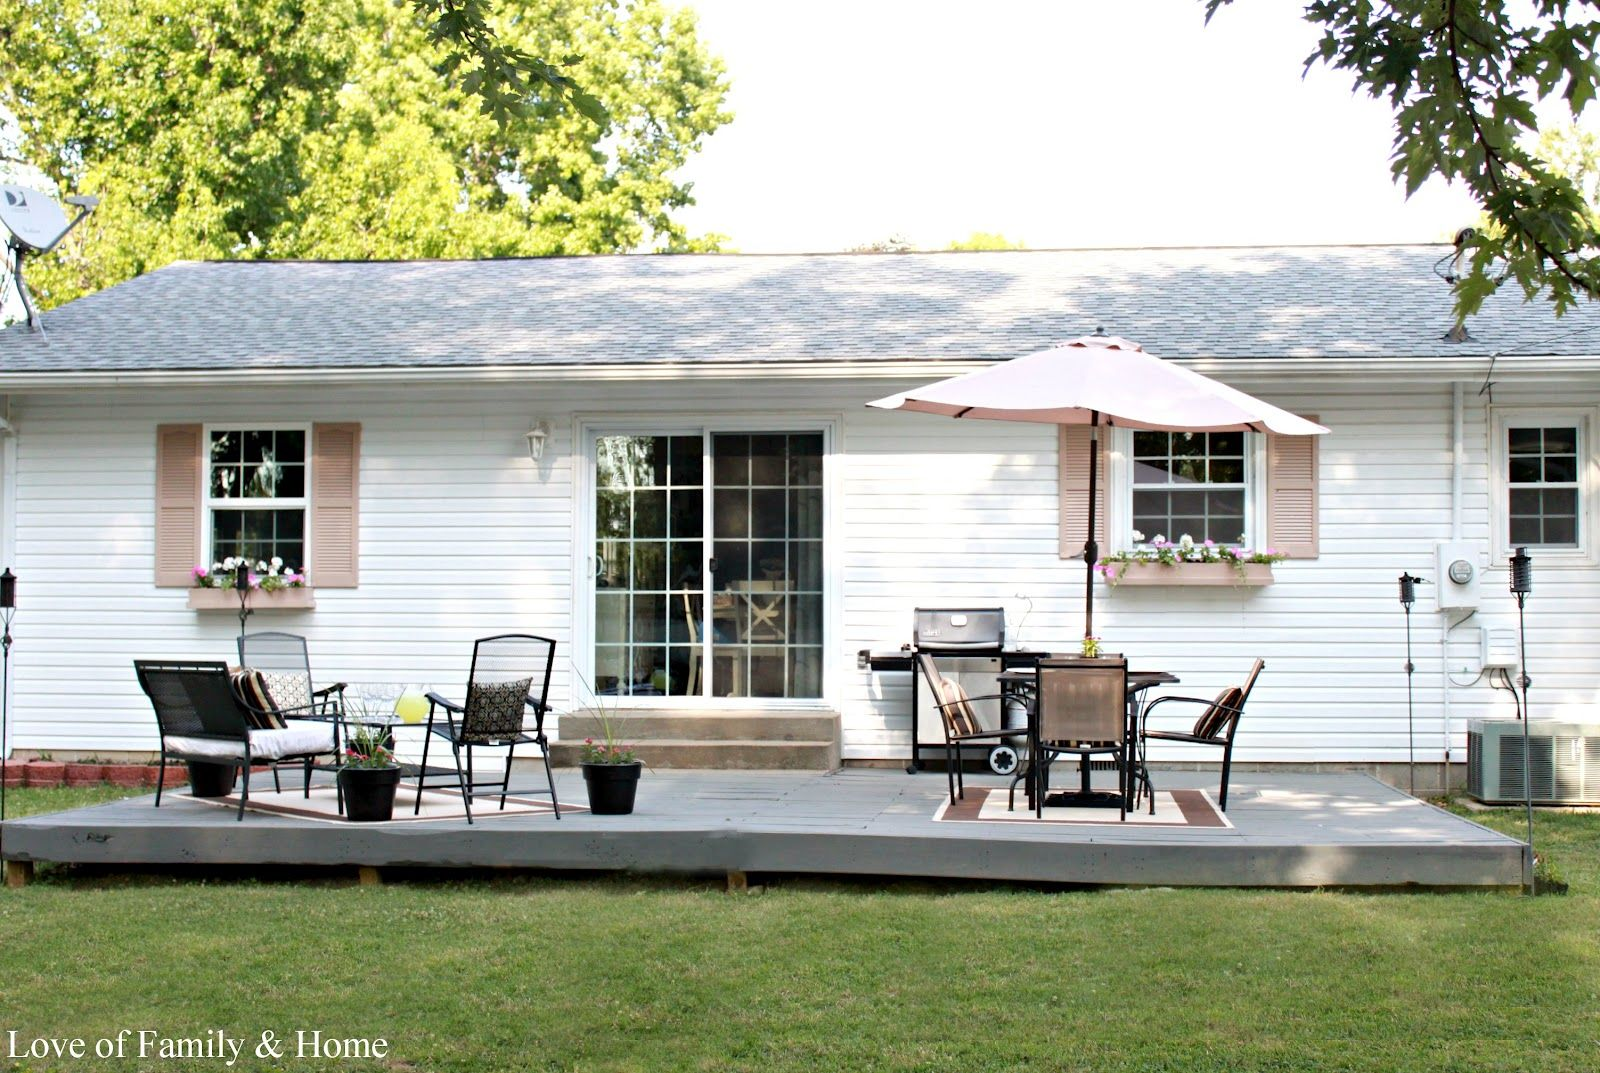 Fine Mobile Home Patio Ideas Images - Home Decorating Ideas ...